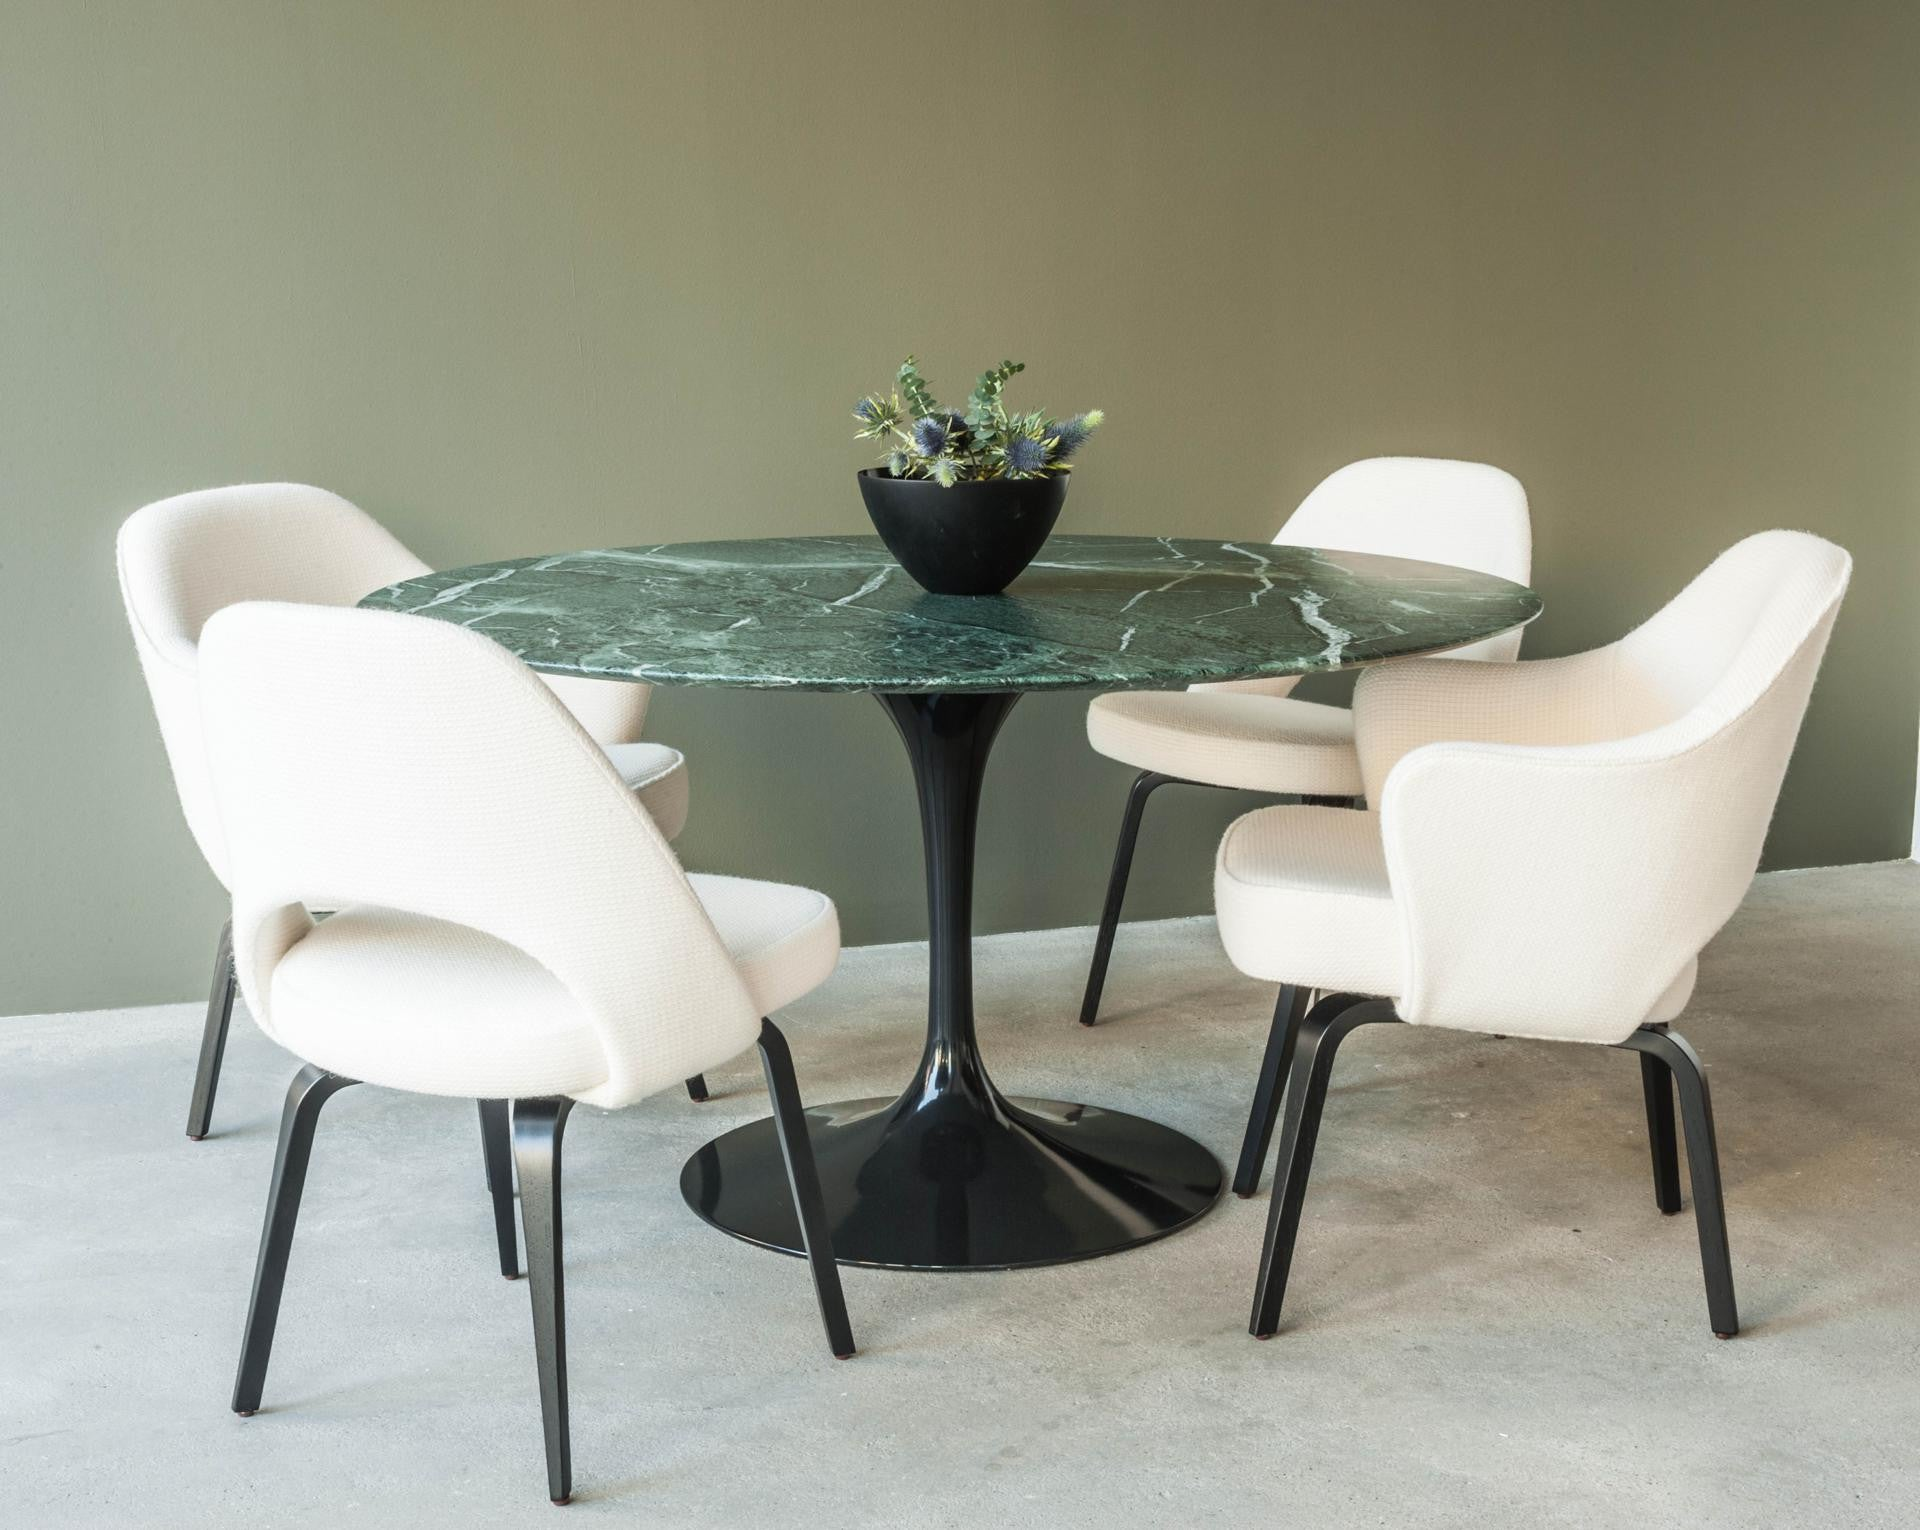 Saarinen Tulip Dining Table Round Couch Potato Company - Black marble tulip dining table